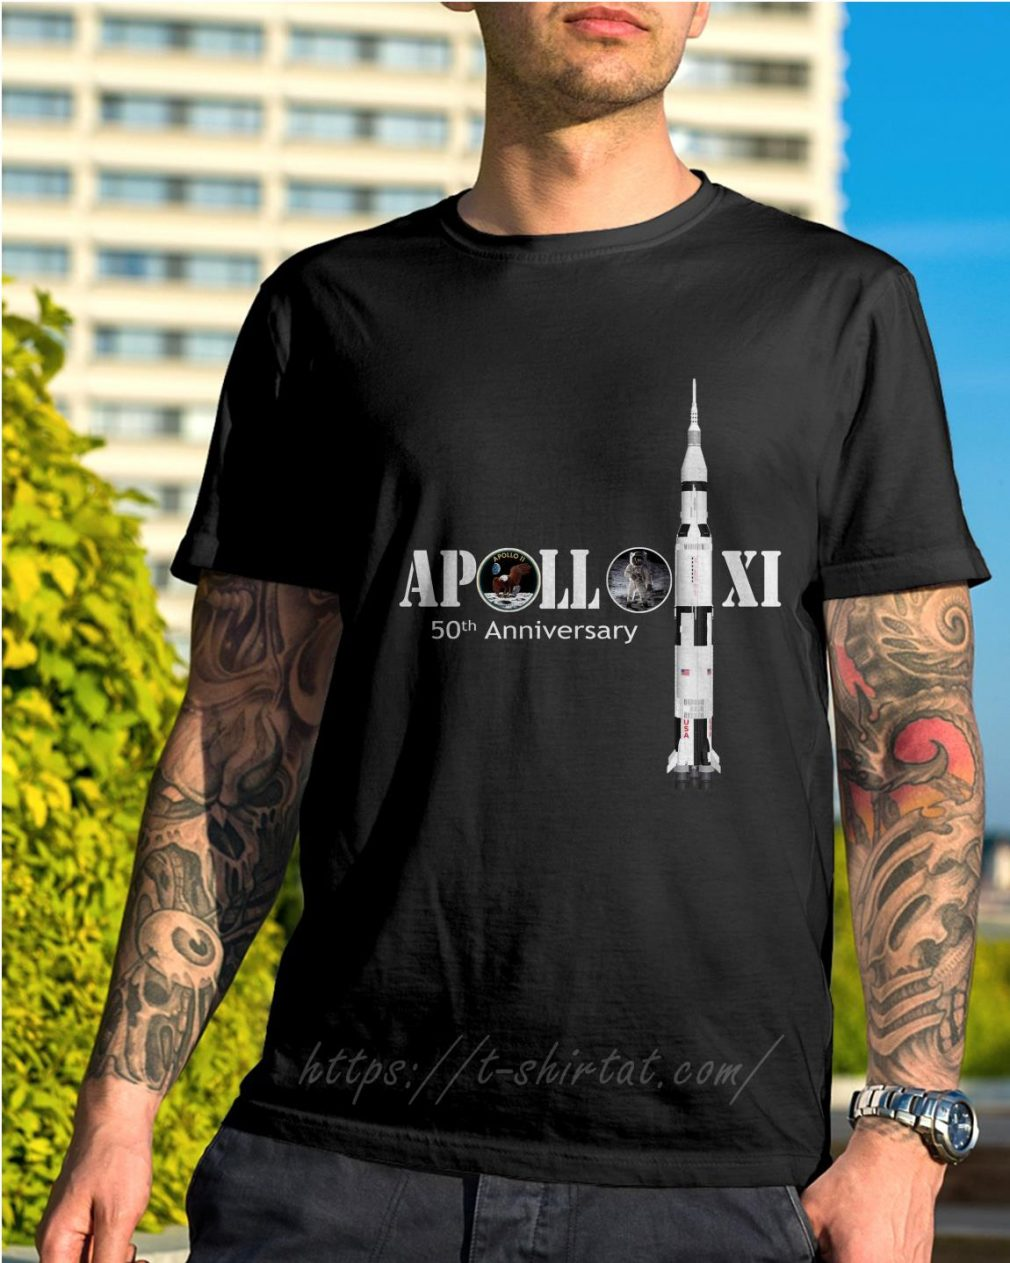 Apollo XI 50th Anniversary shirt